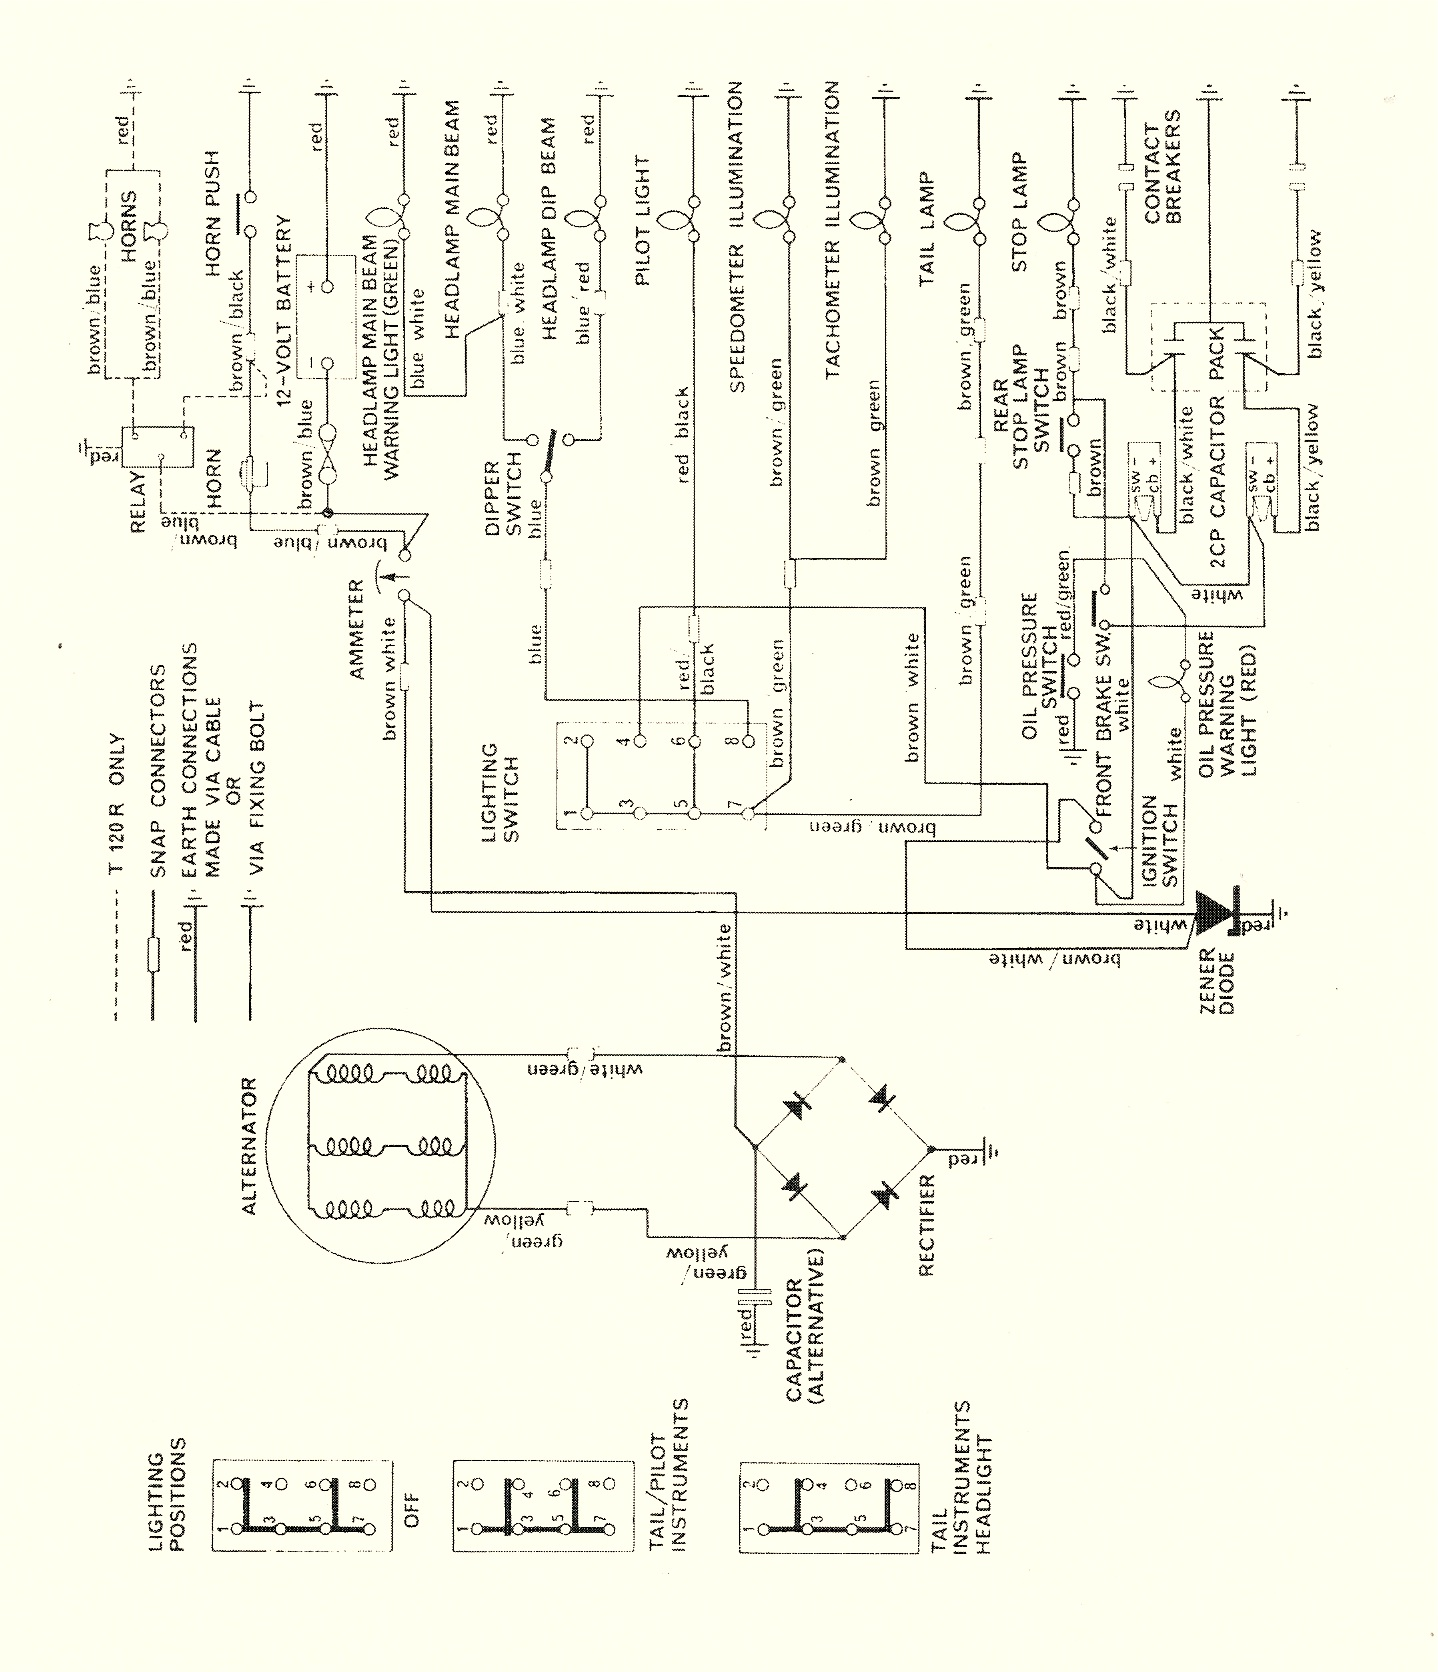 1970 triumph 650 Wiring Diagram triumph tr6 wiring diagram efcaviation com tr6 wiring diagram at honlapkeszites.co